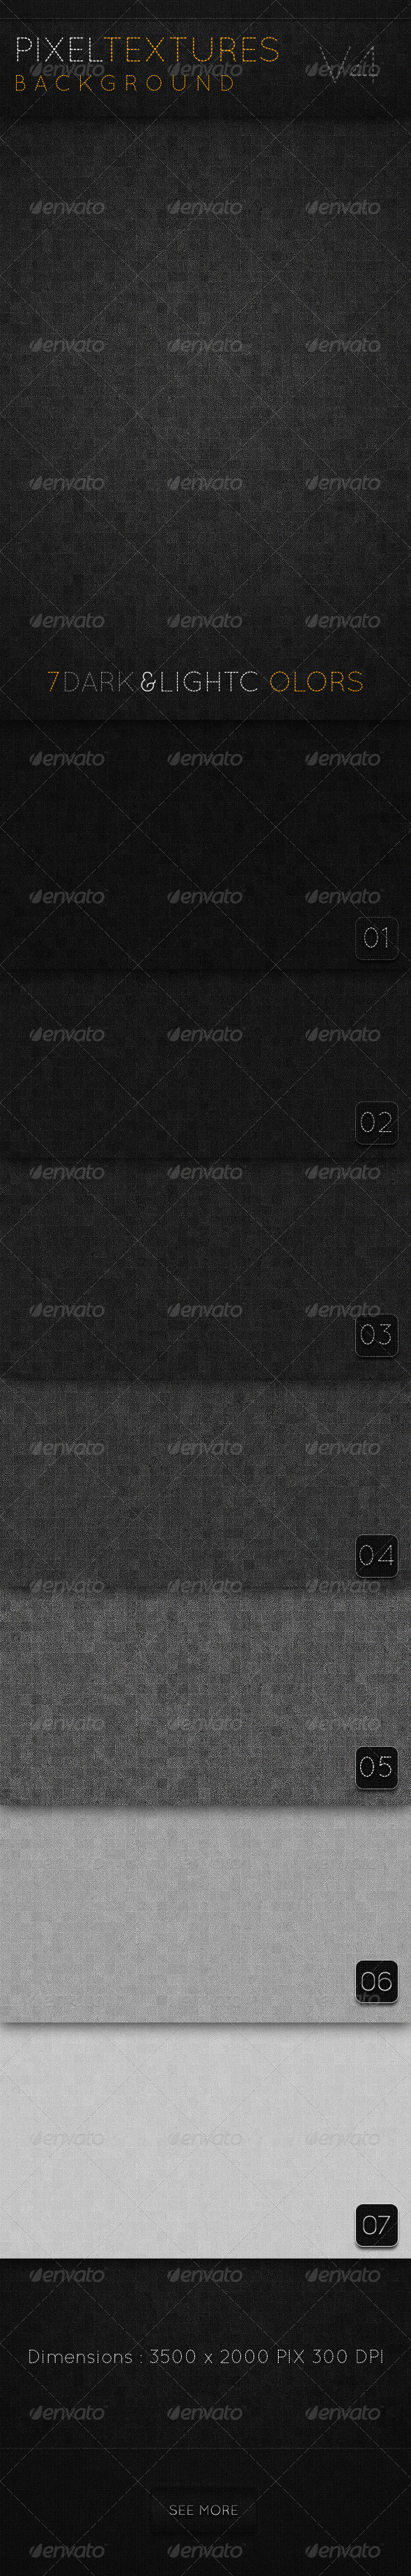 Pixel Textures background V4 - Abstract Backgrounds